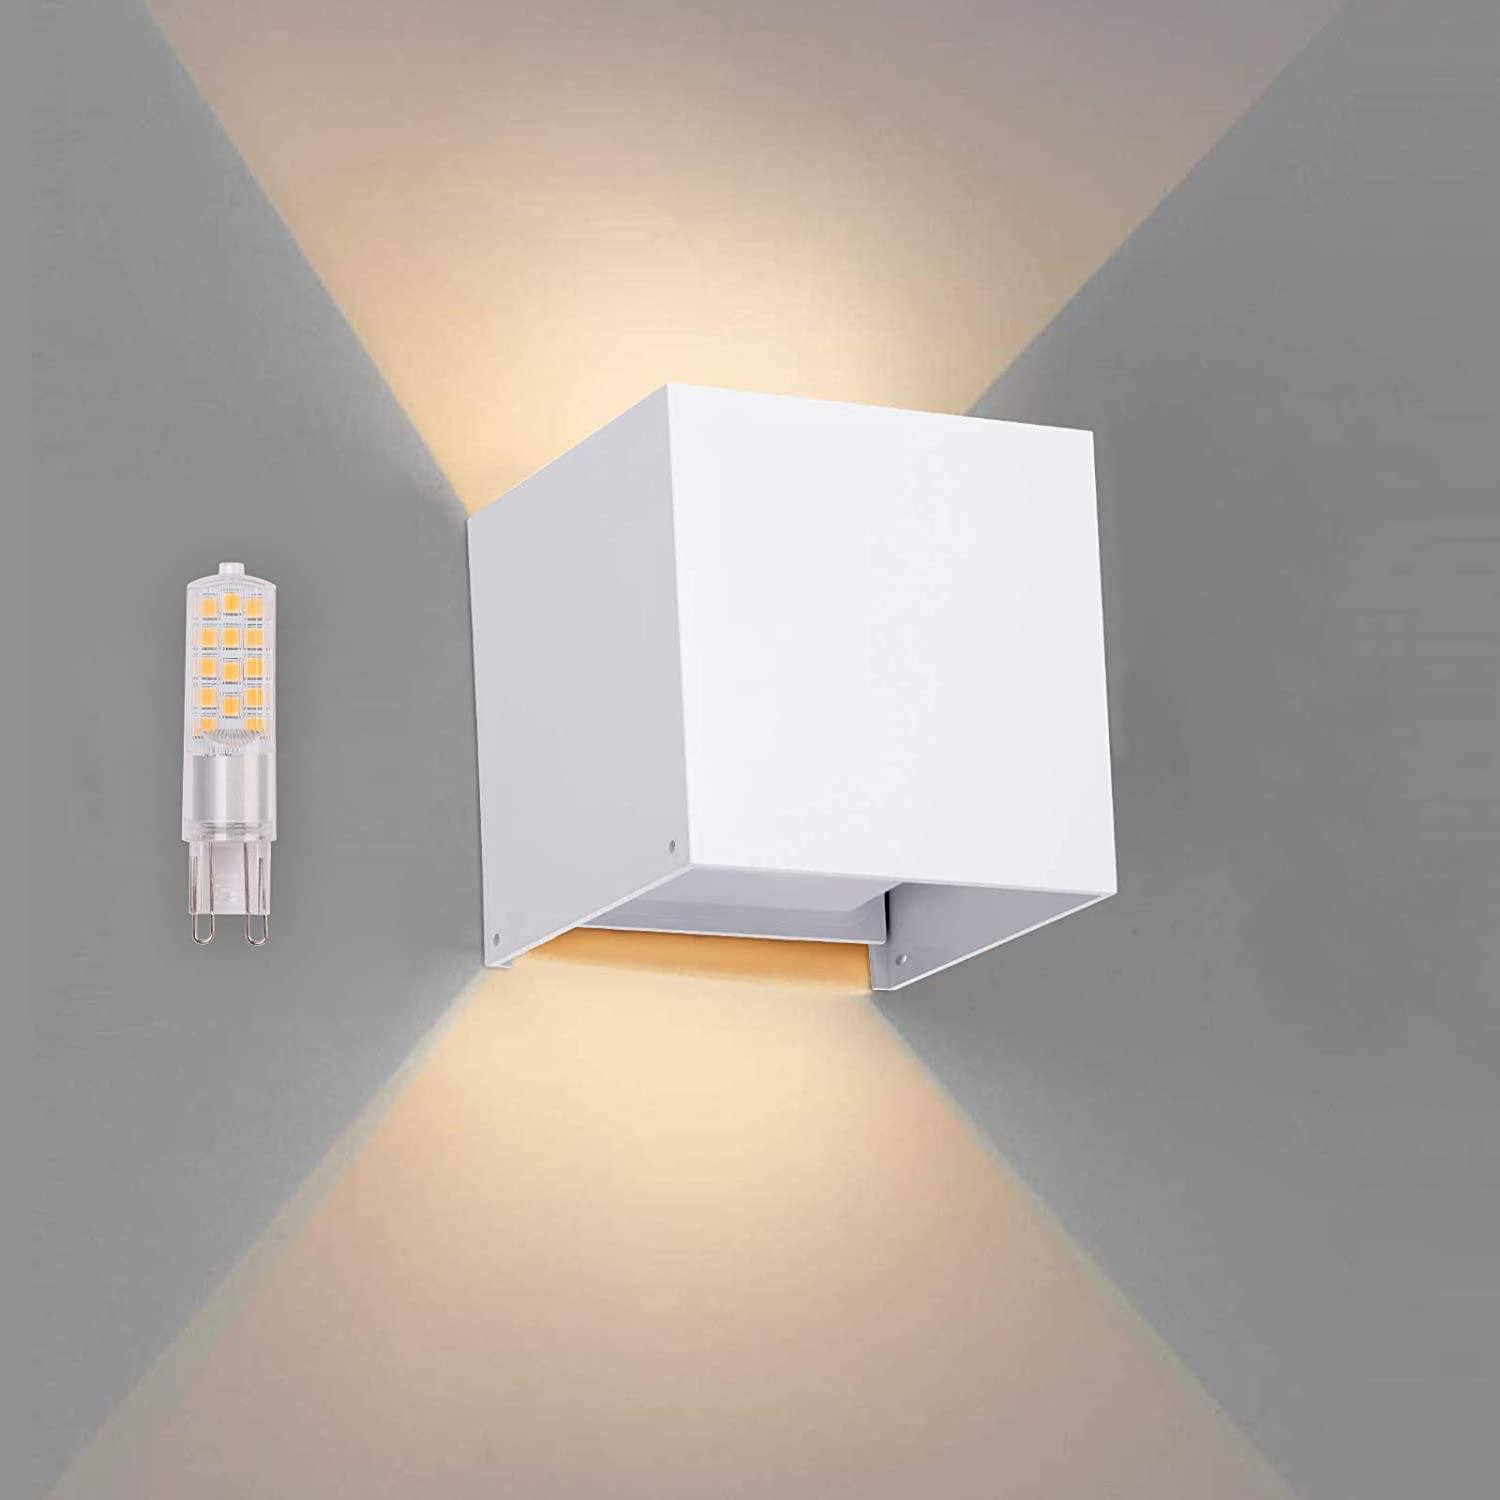 OOWOLF LED Wall Sconce Light, Waterproof IP65 G9 Replaceable Bulb Up and Down Square Wall Lamp Aluminum 3000K Warm White for Outdoor Entrance Living Room Bedroom Hallway Conservatory Room Decor